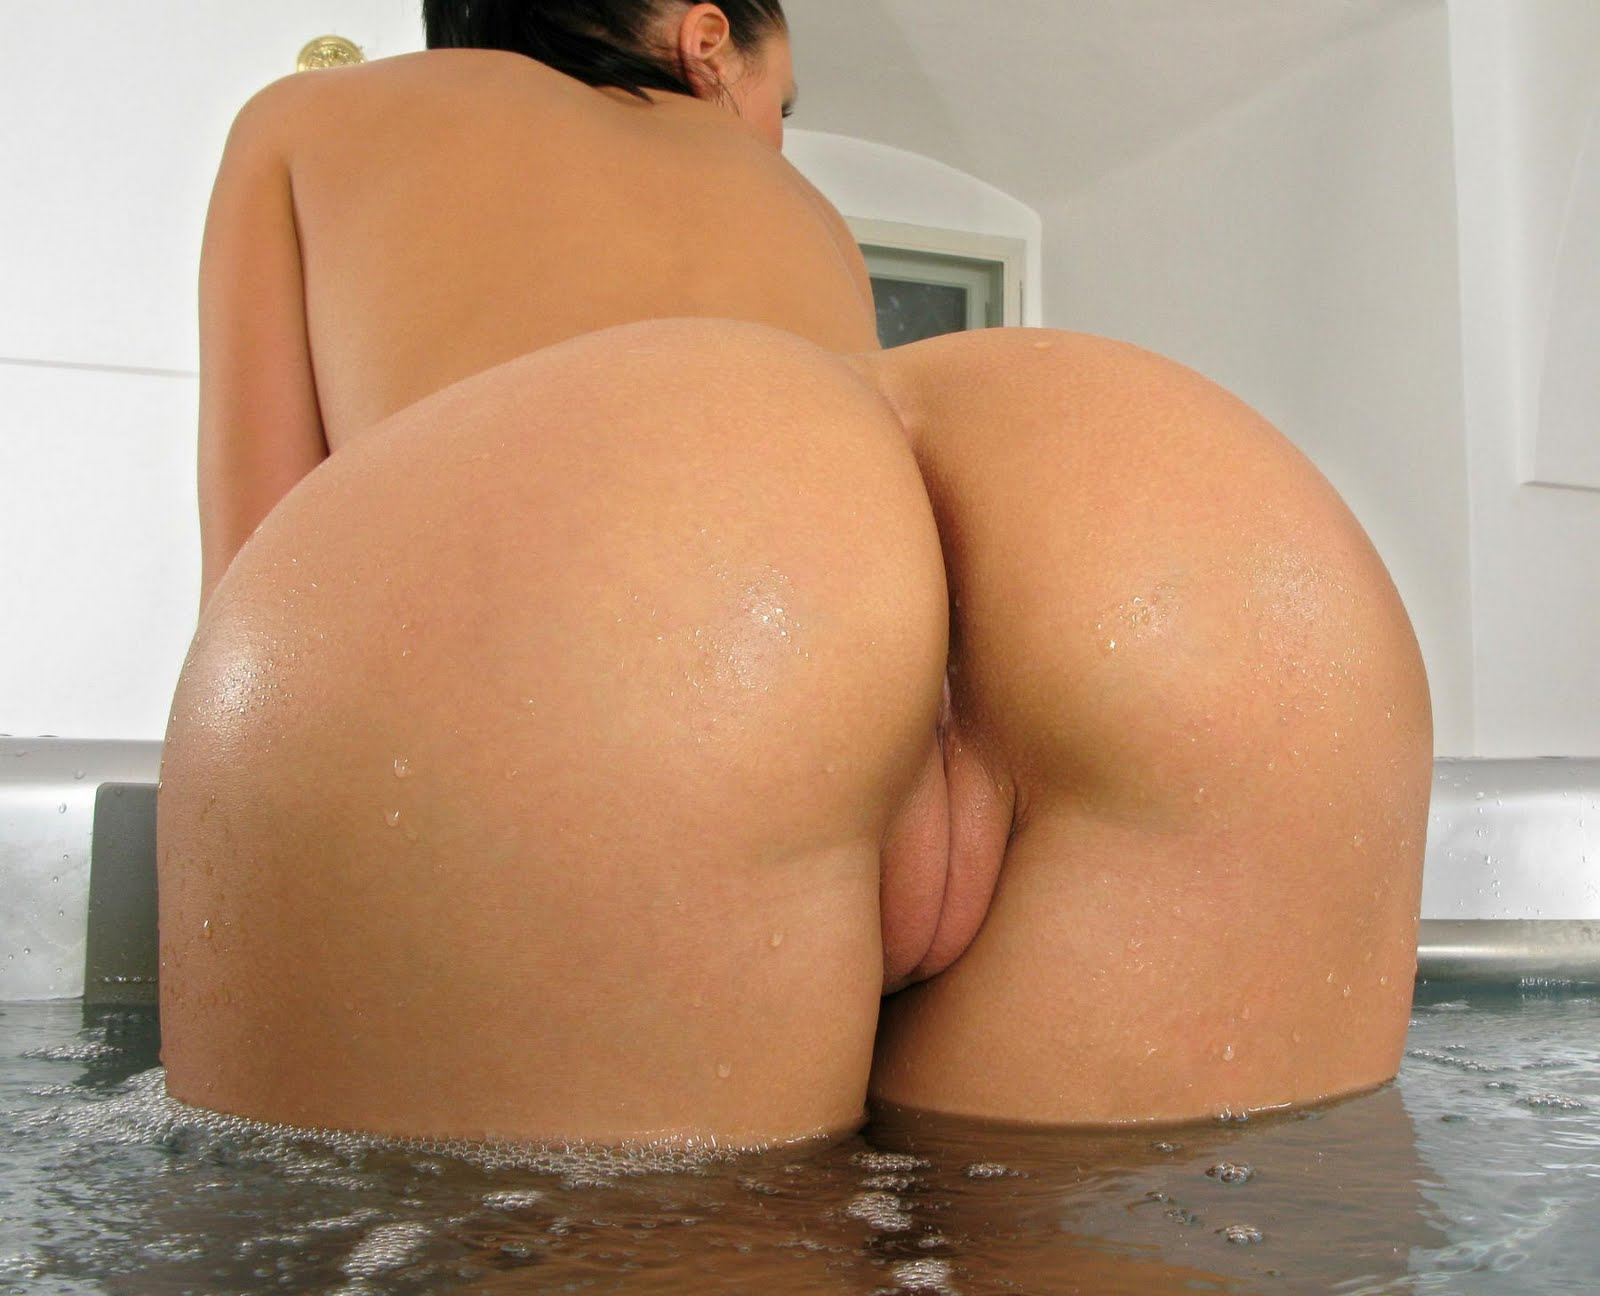 Big ass and pussy.com